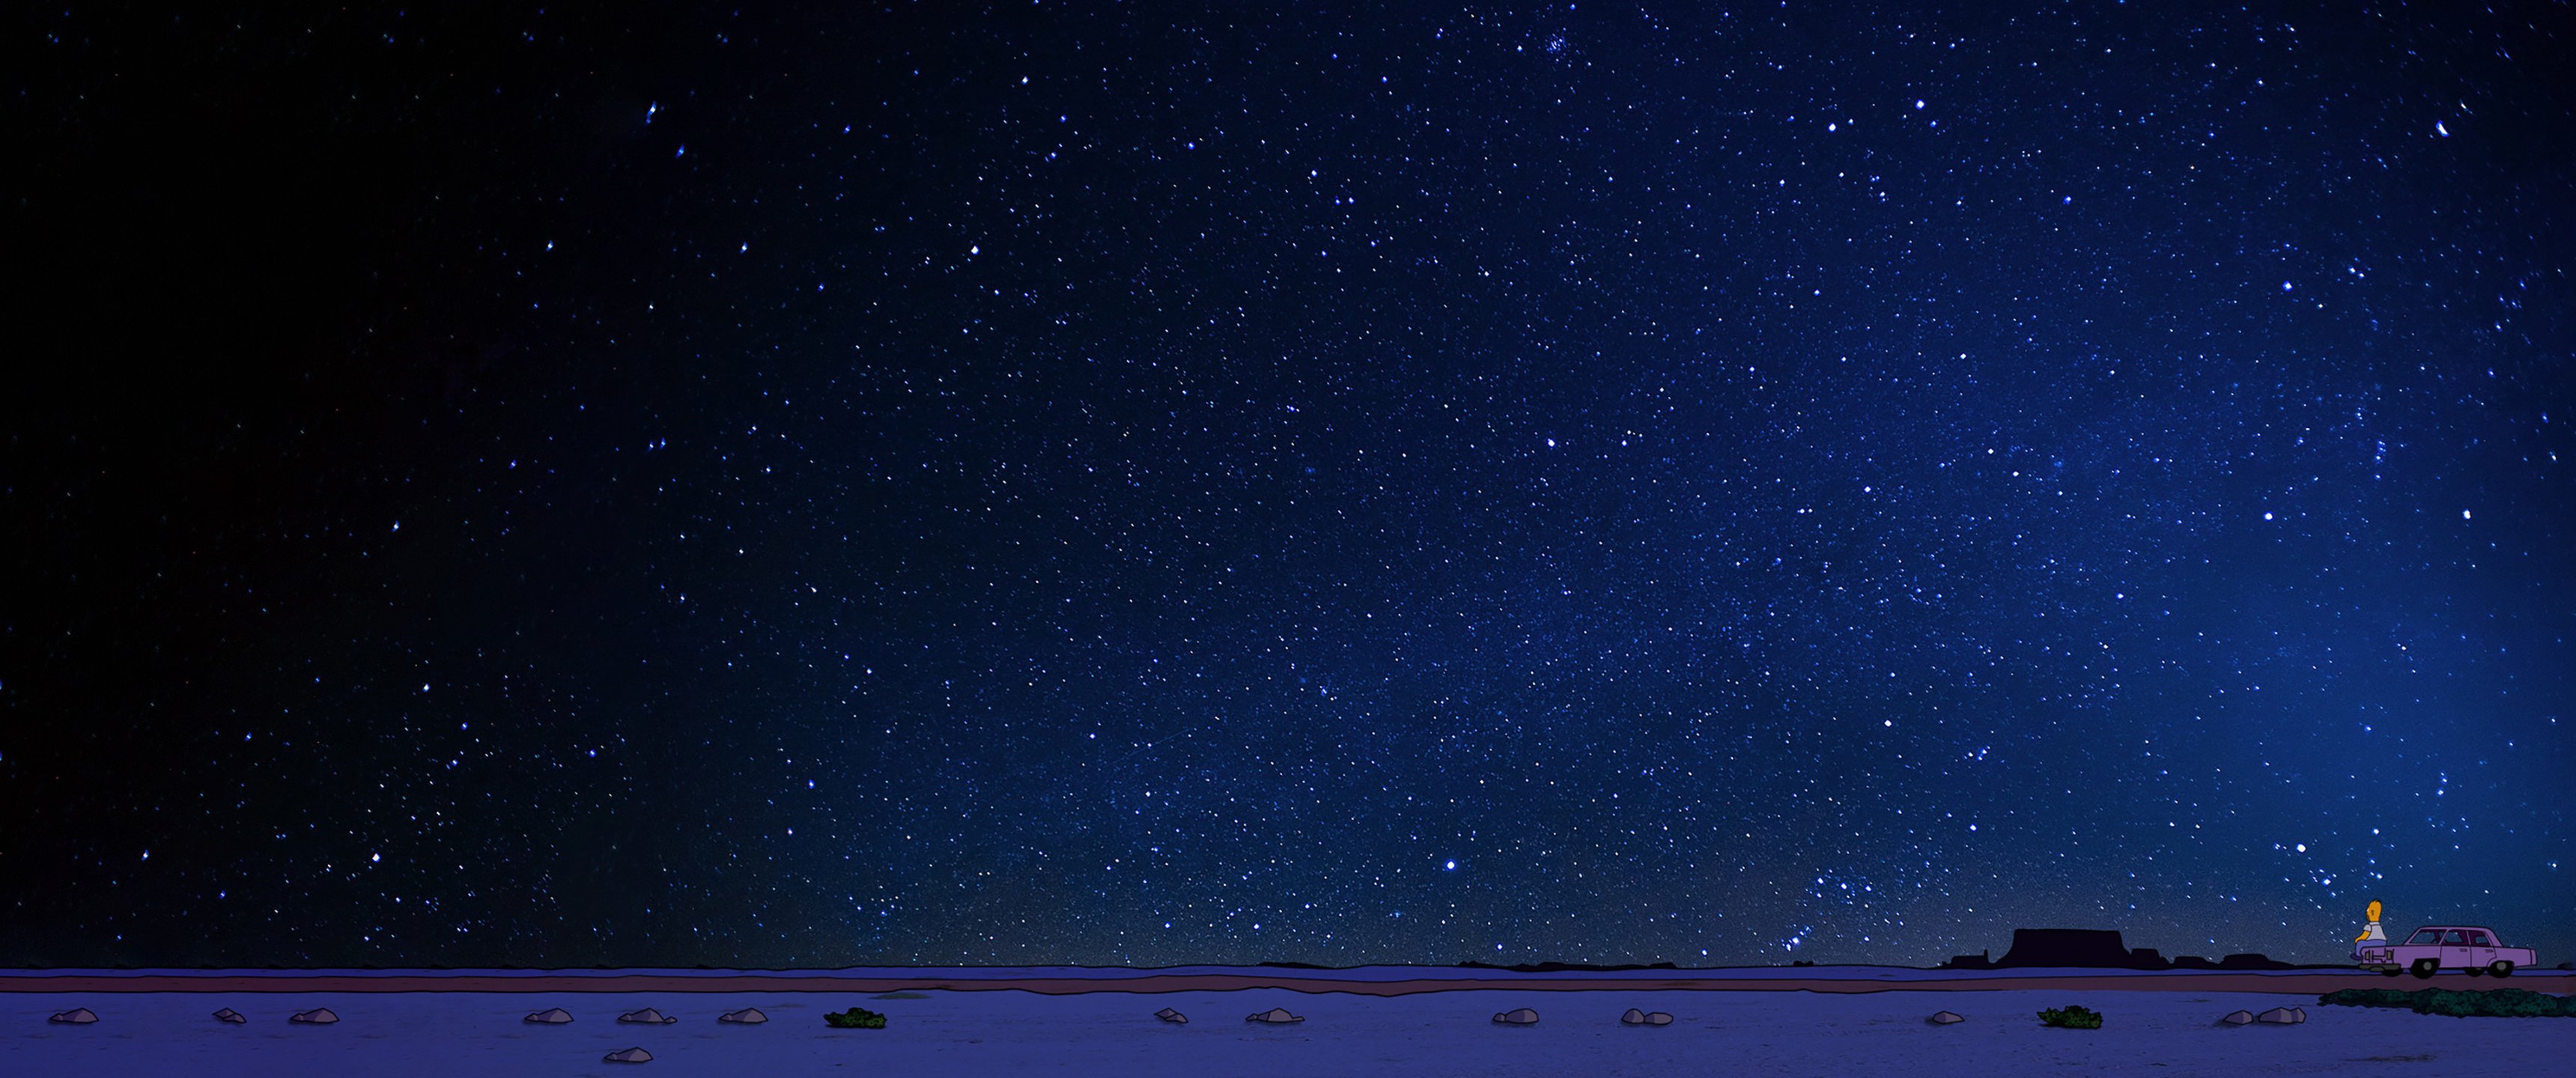 Homer Looking At The Stars Wallpaper Hd Artist 4k Wallpapers Images Photos And Background